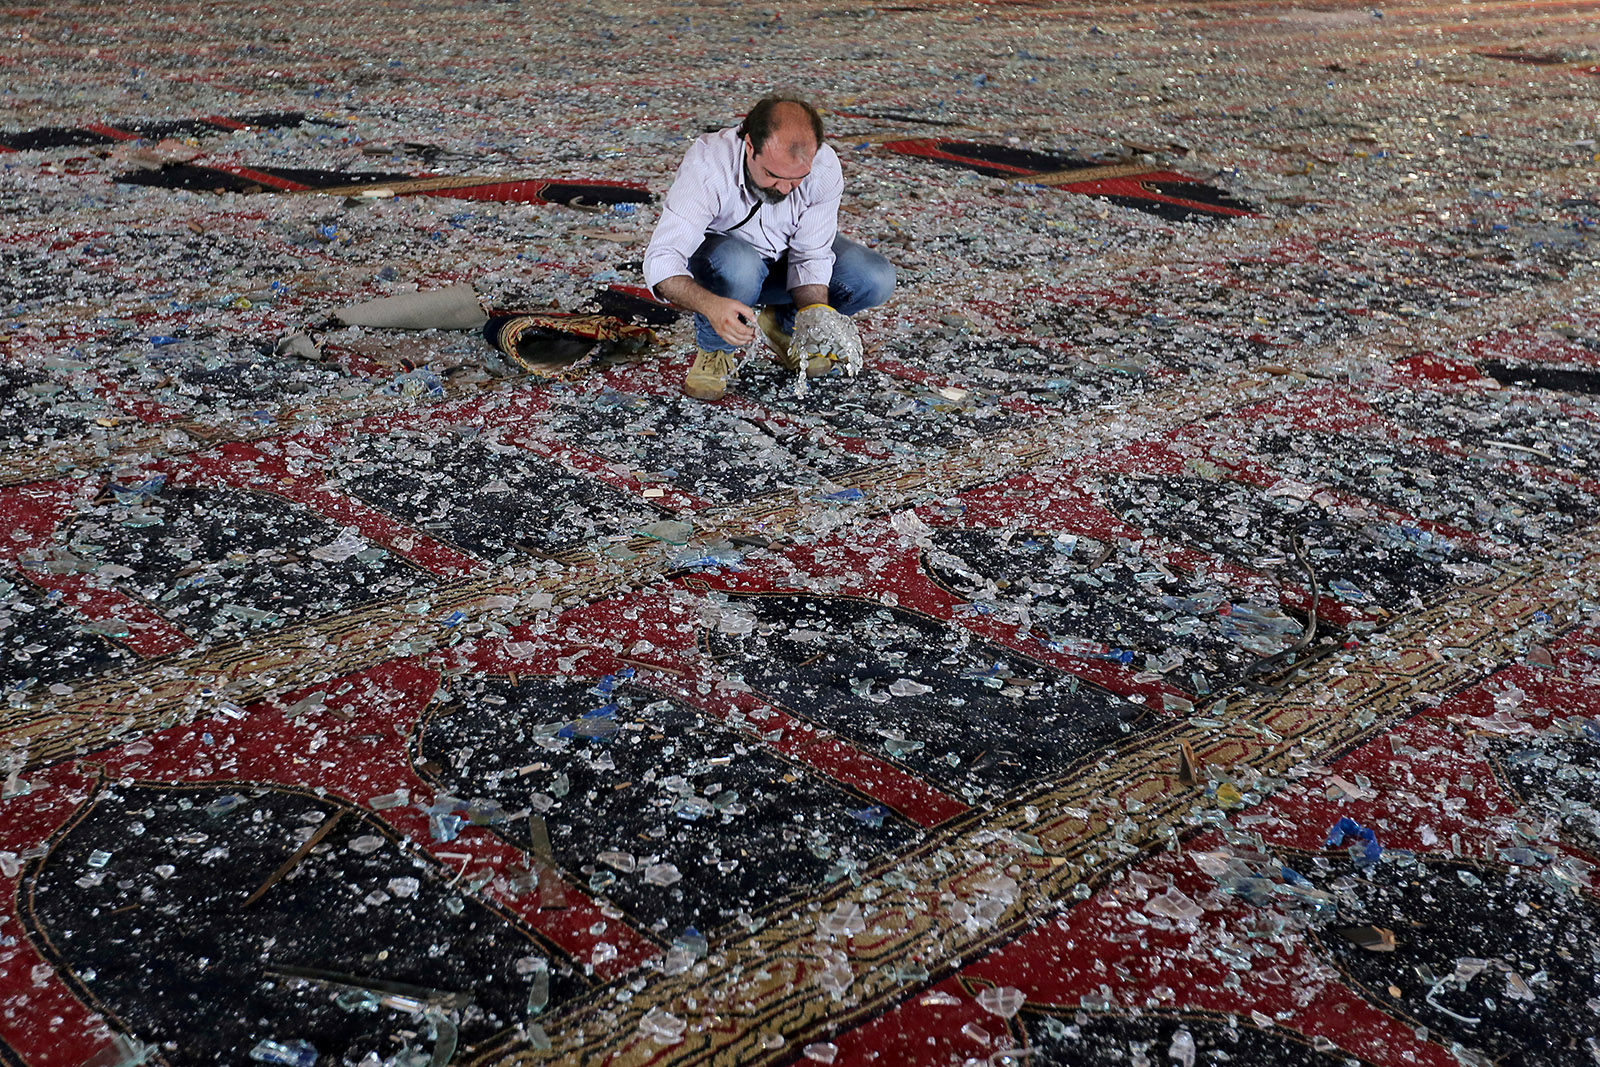 A man removes broken glass scattered on the carpet of a mosque damaged in the blast in Beirut, Lebanon in August 2020